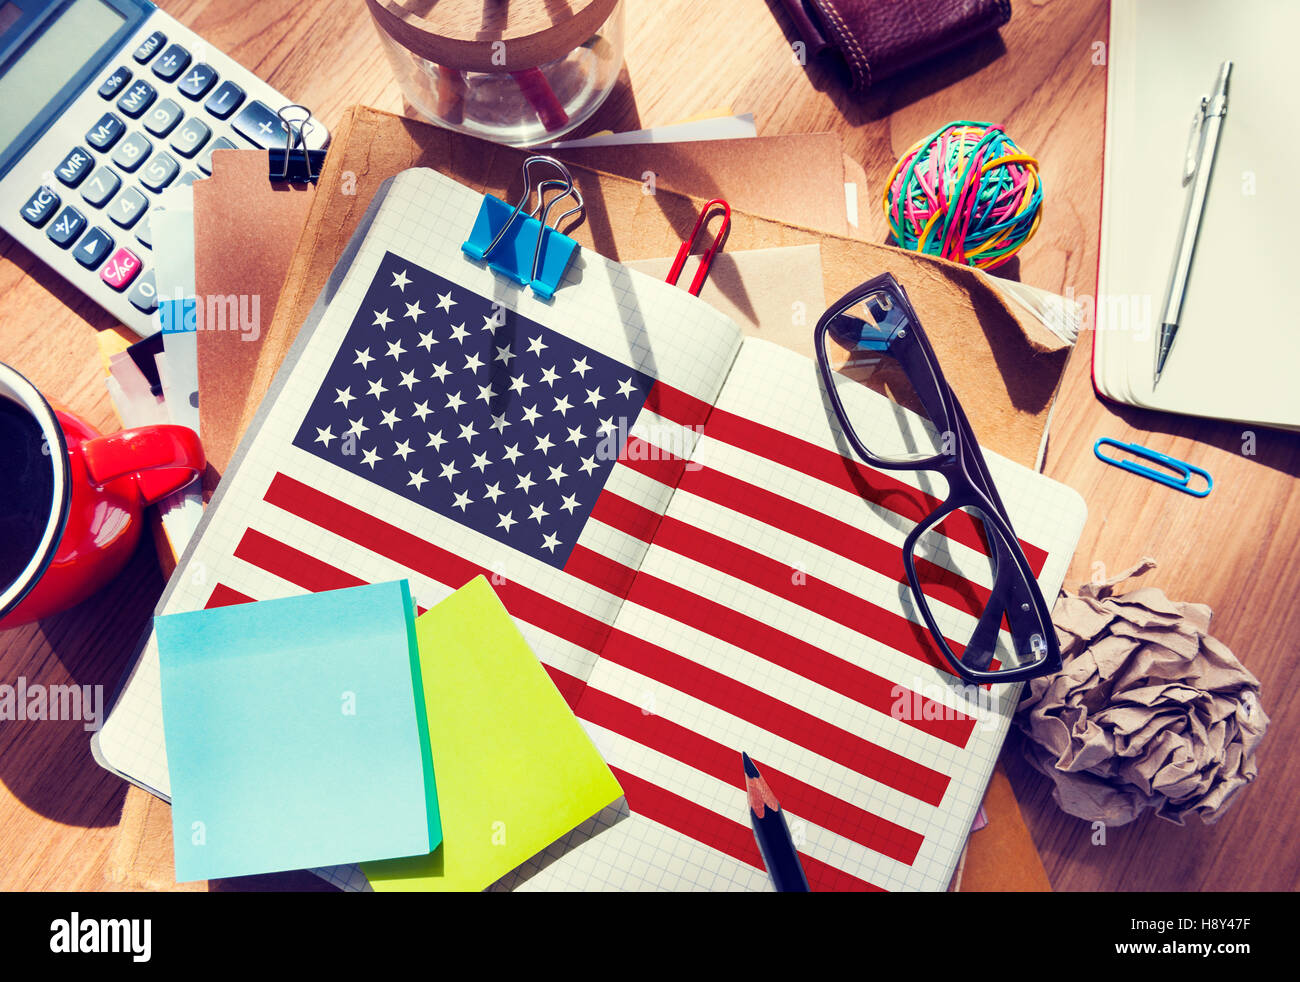 American Flag Nationality Liberty Country Concept - Stock Image